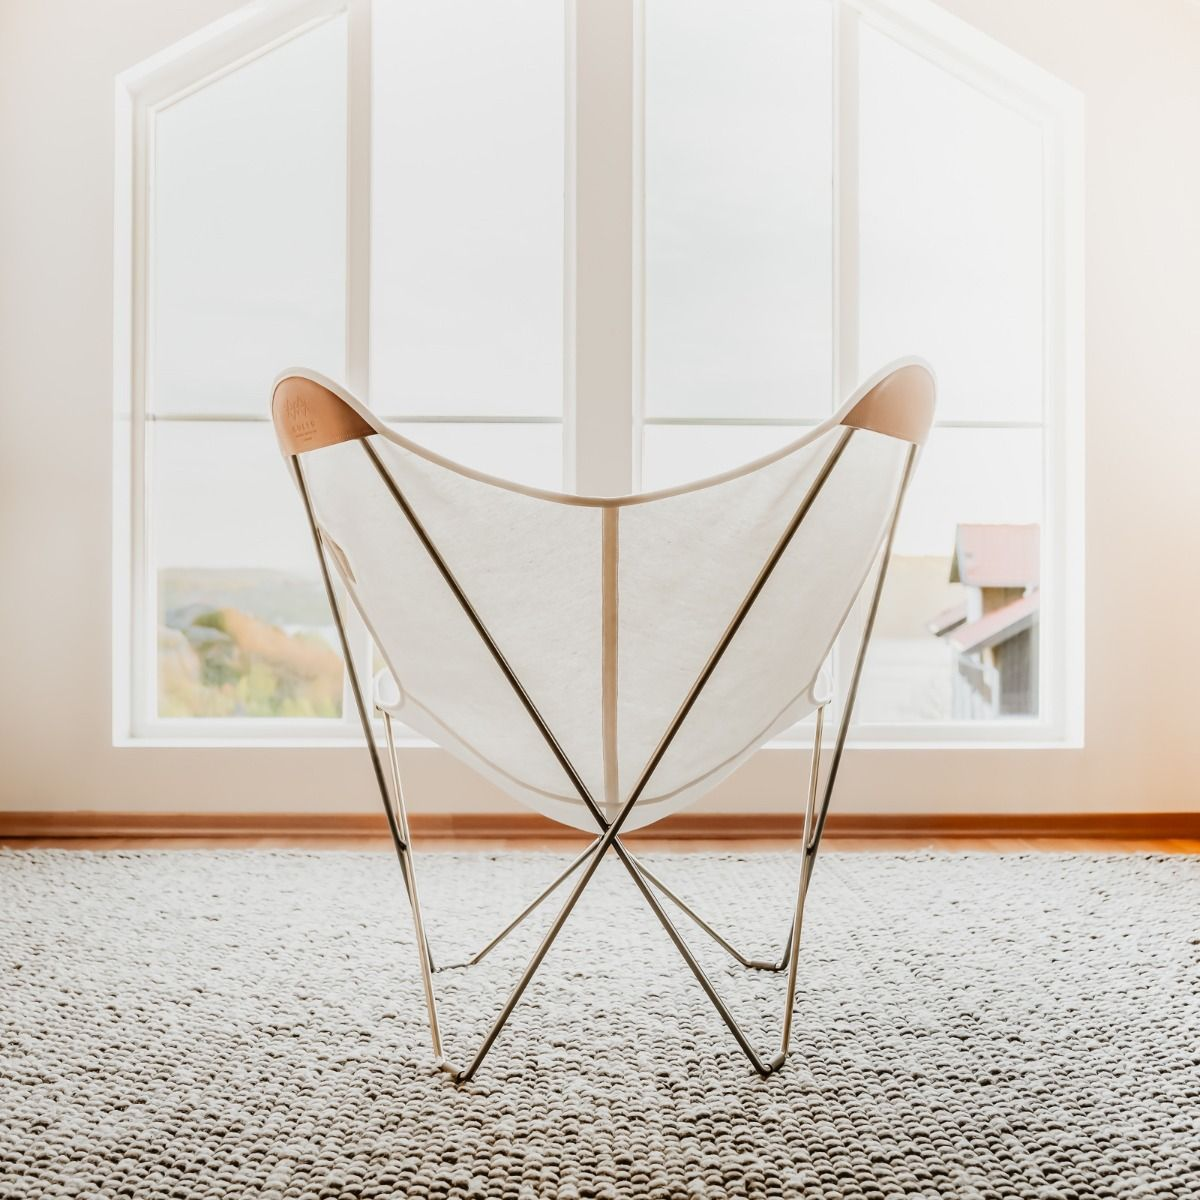 Cuero Design Canvas Butterfly Chair - Canvase Mariposa